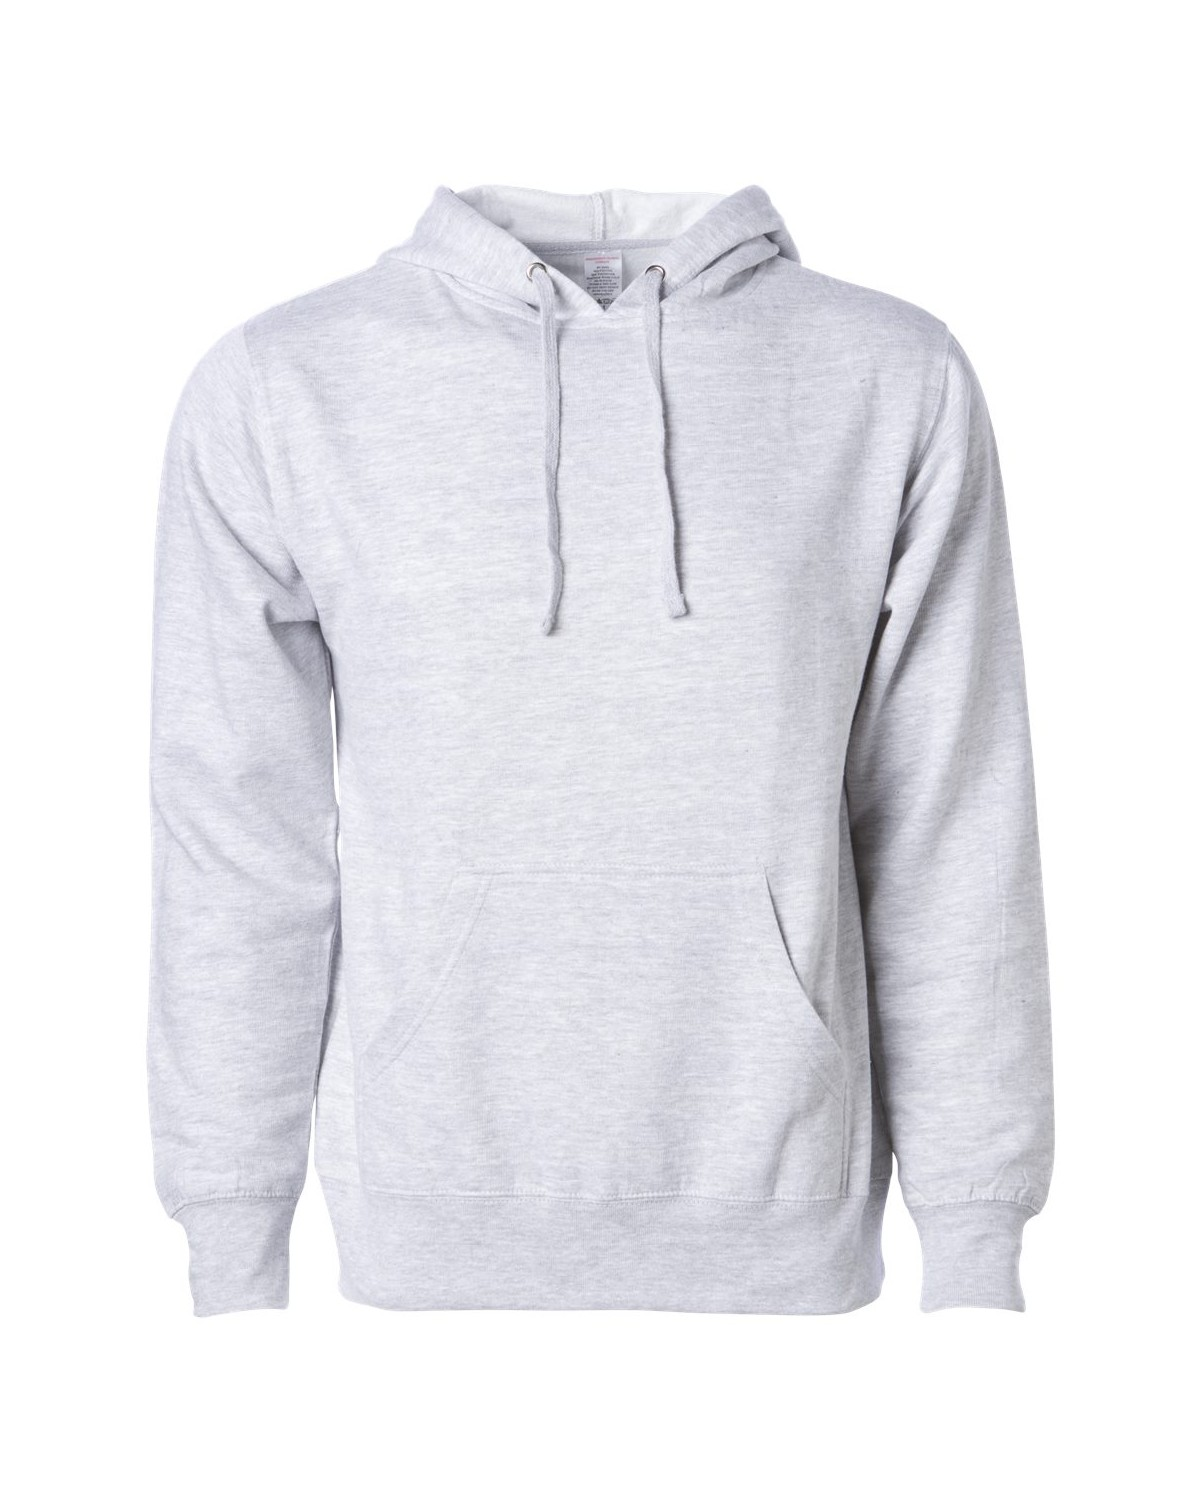 SS4500 Independent Trading Co. GREY HEATHER